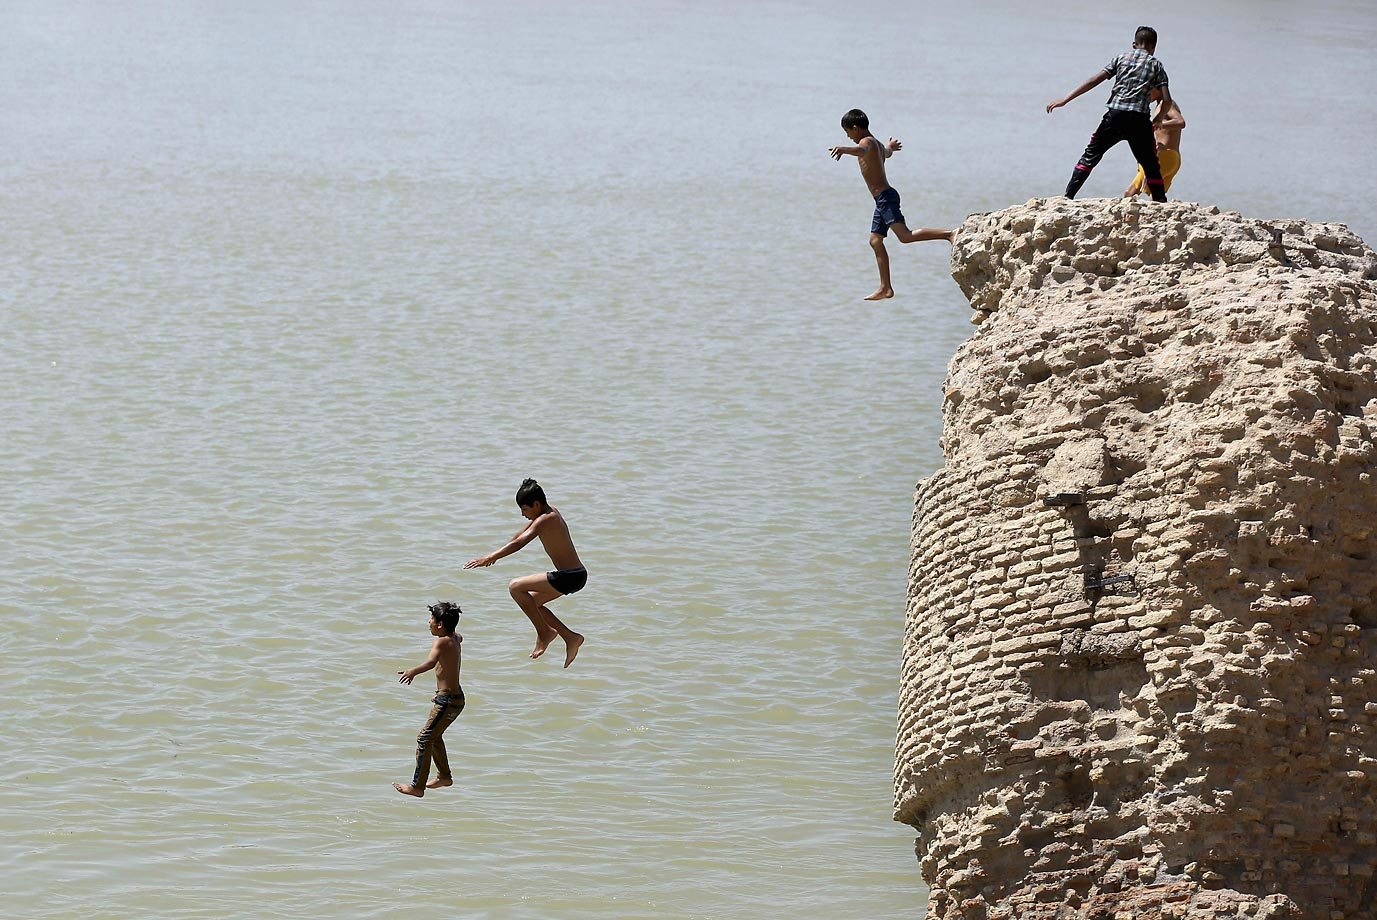 Children jump off the ruin of an old building into the Tigris River to beat the heat in Baghdad, Iraq.